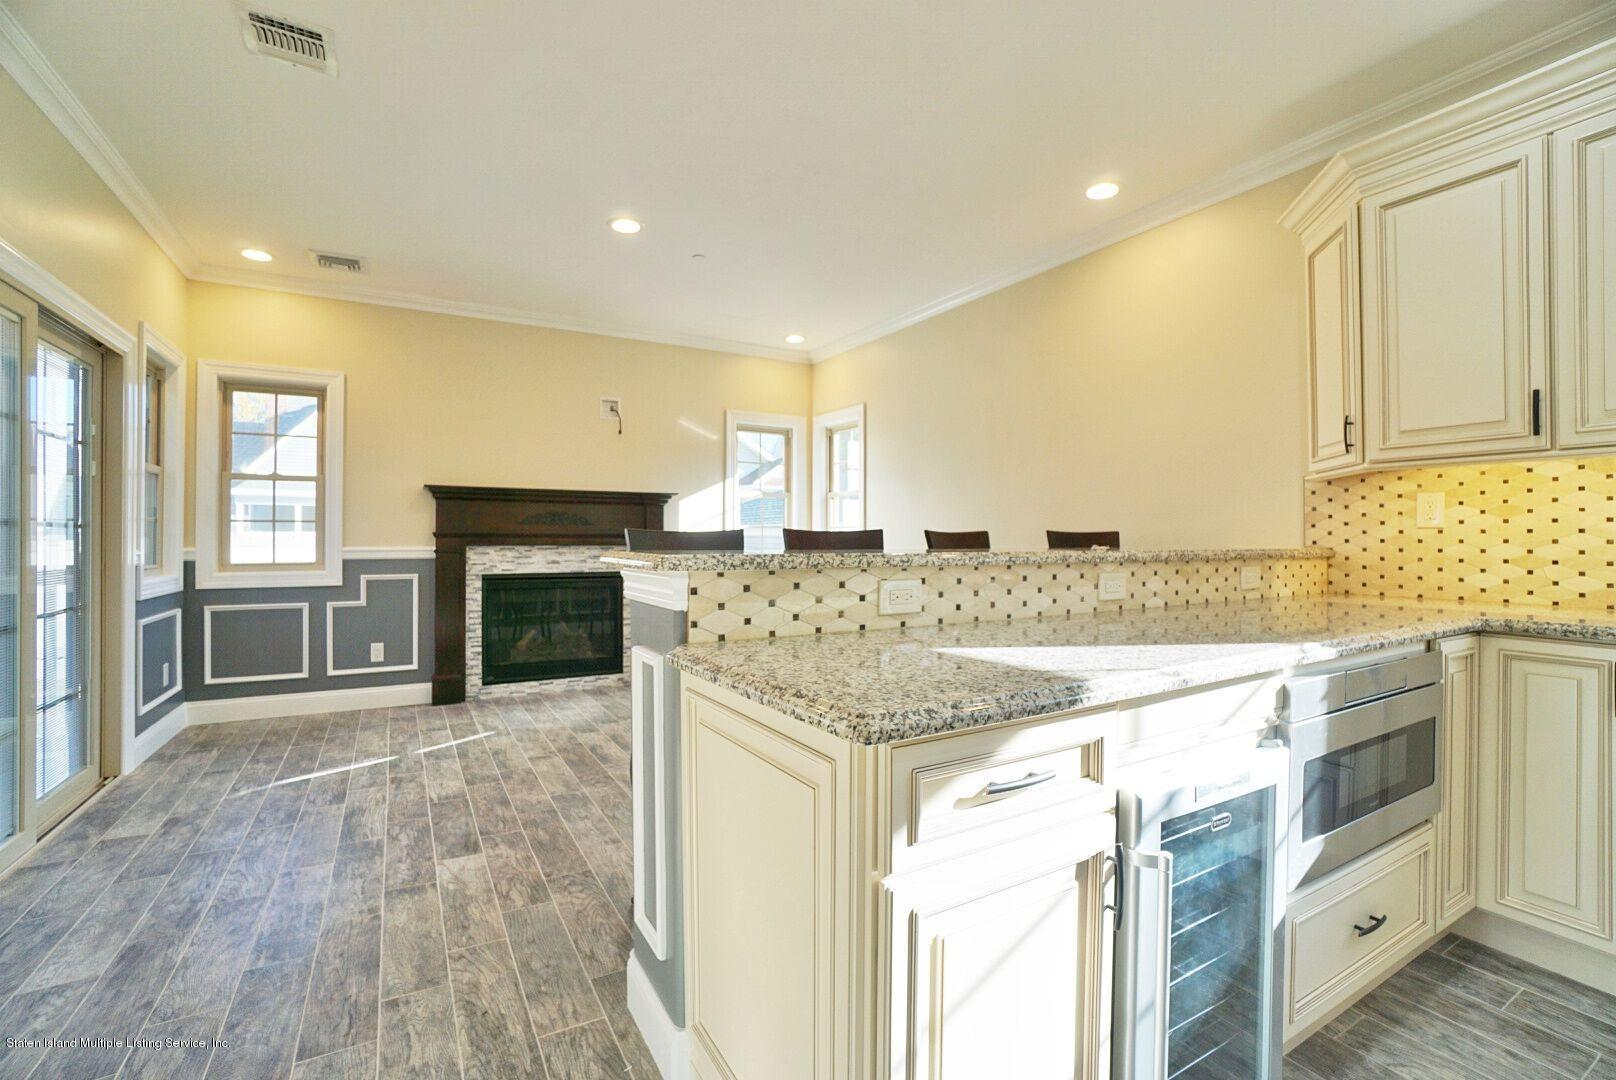 Single Family - Detached 165 Woolley Avenue  Staten Island, NY 10314, MLS-1128875-29